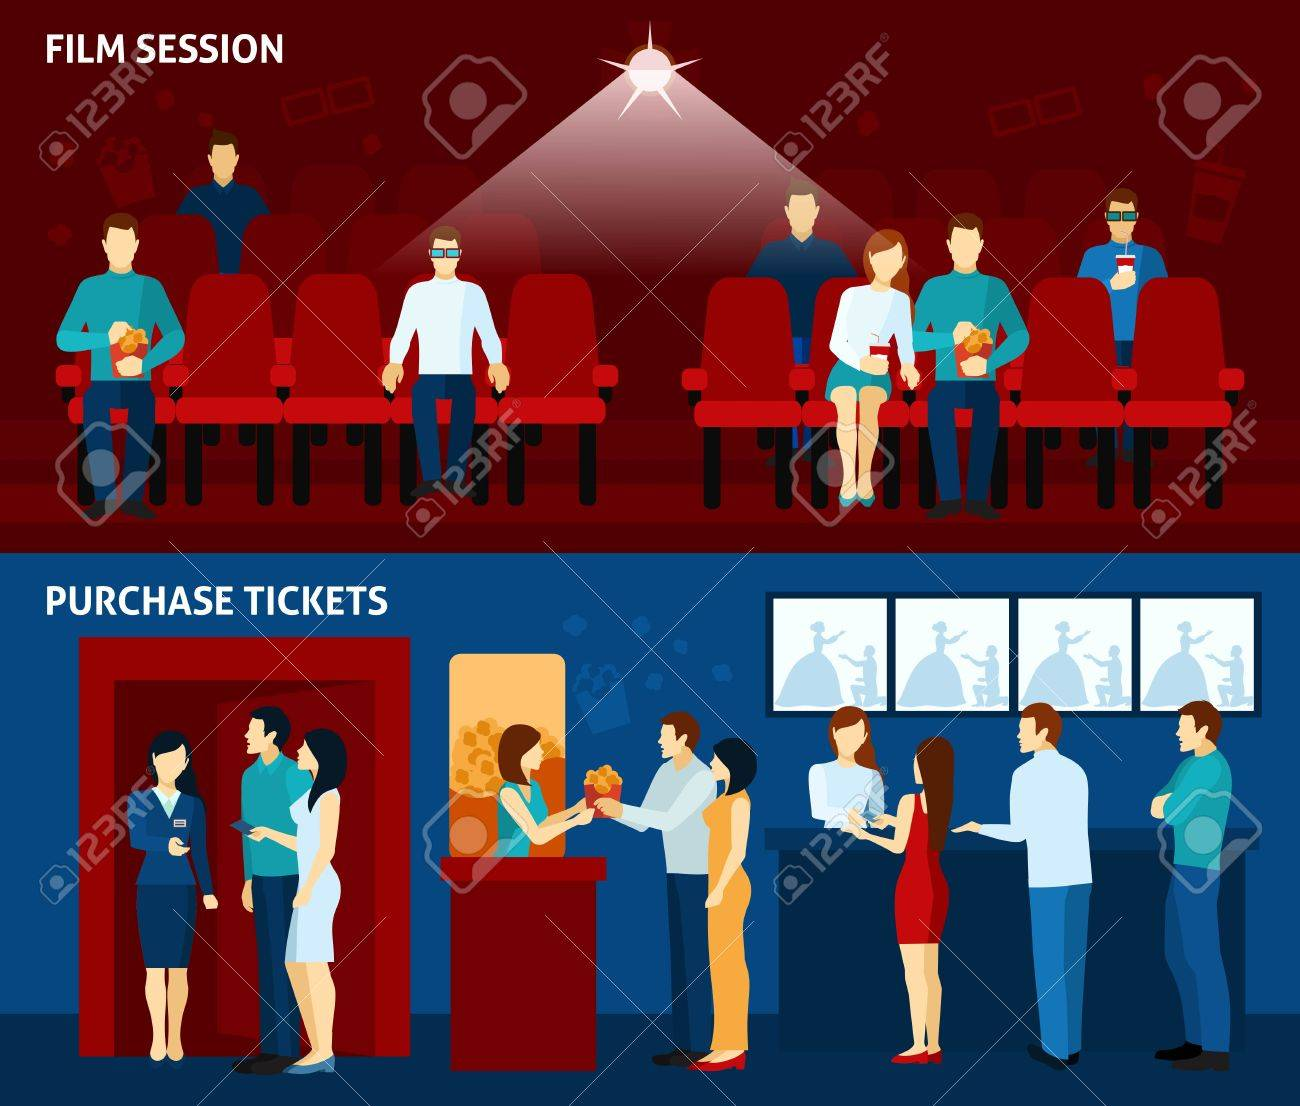 Movie Theater Film Show And Tickets Passes Reservations Payment Royalty Free Cliparts Vectors And Stock Illustration Image 45803161